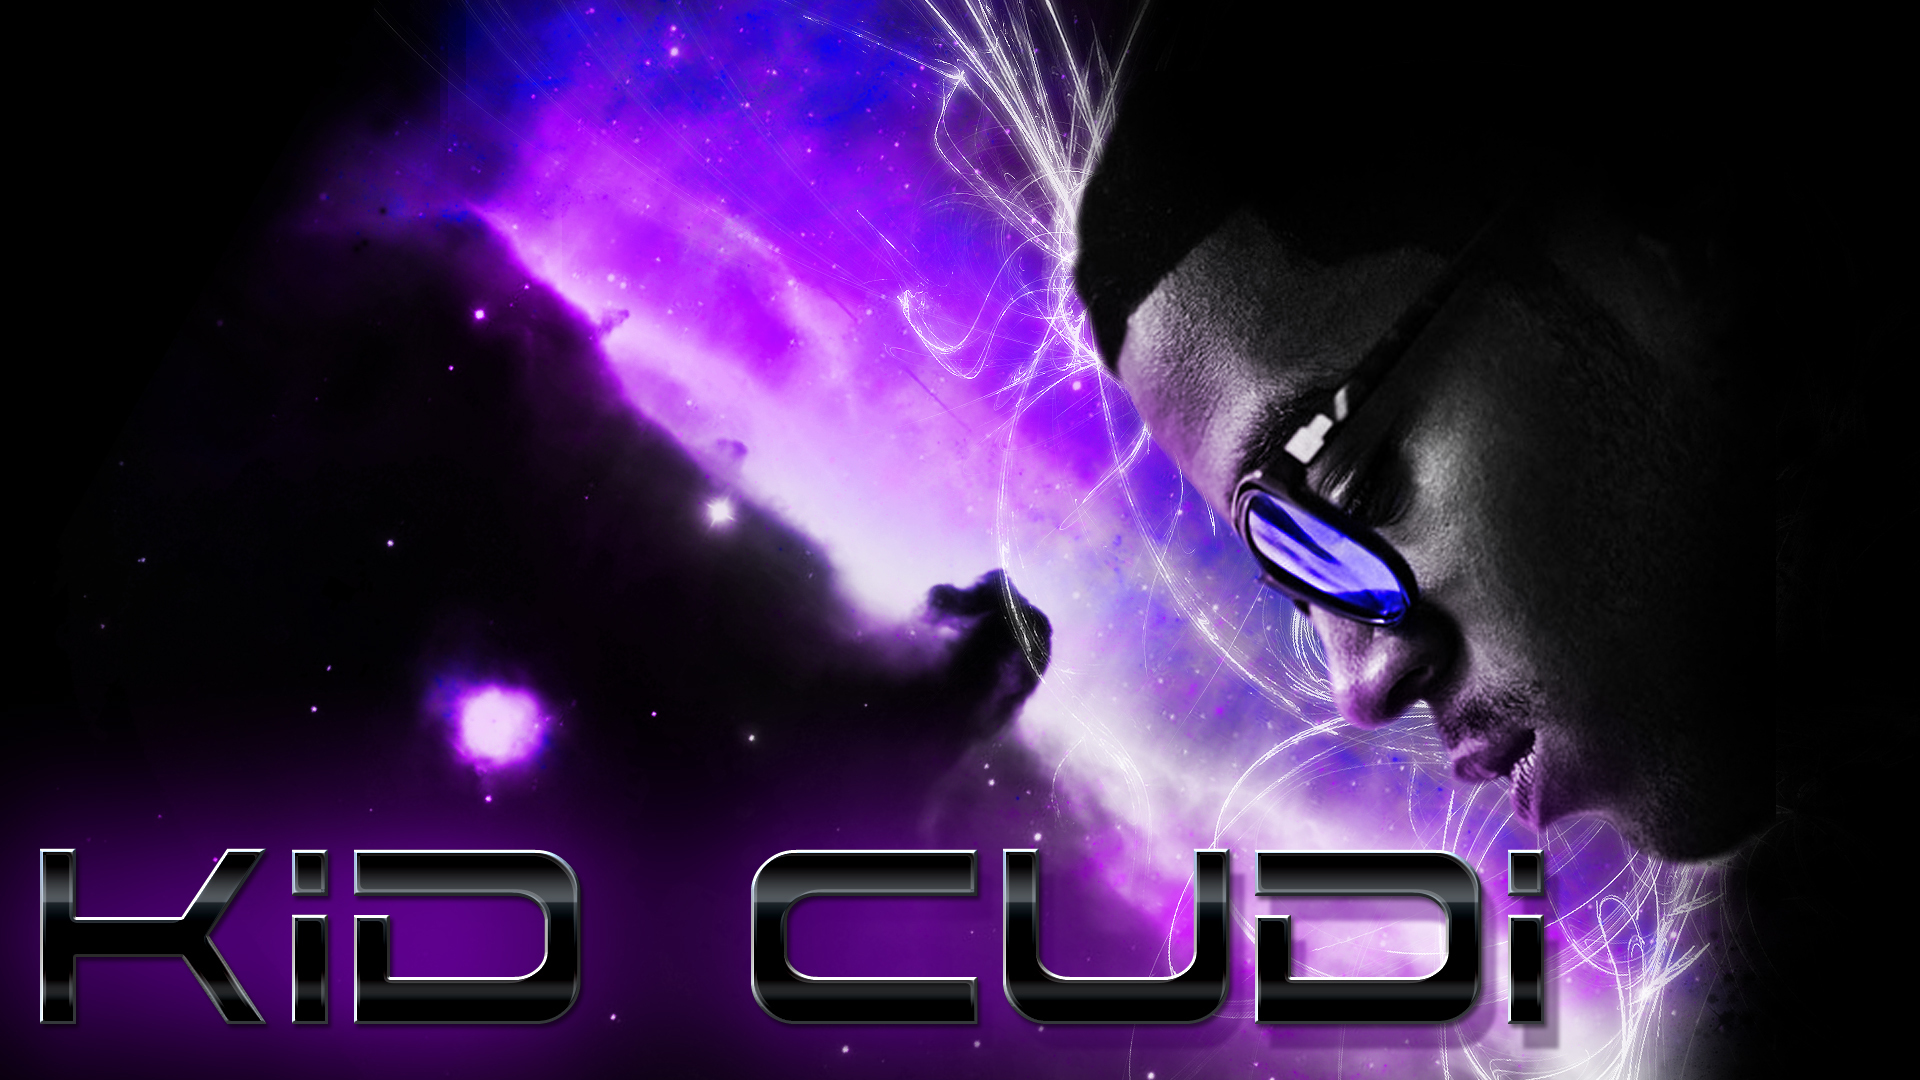 original wallpaper download: Kid Cudi widescreen wallpaper - 1920x1080